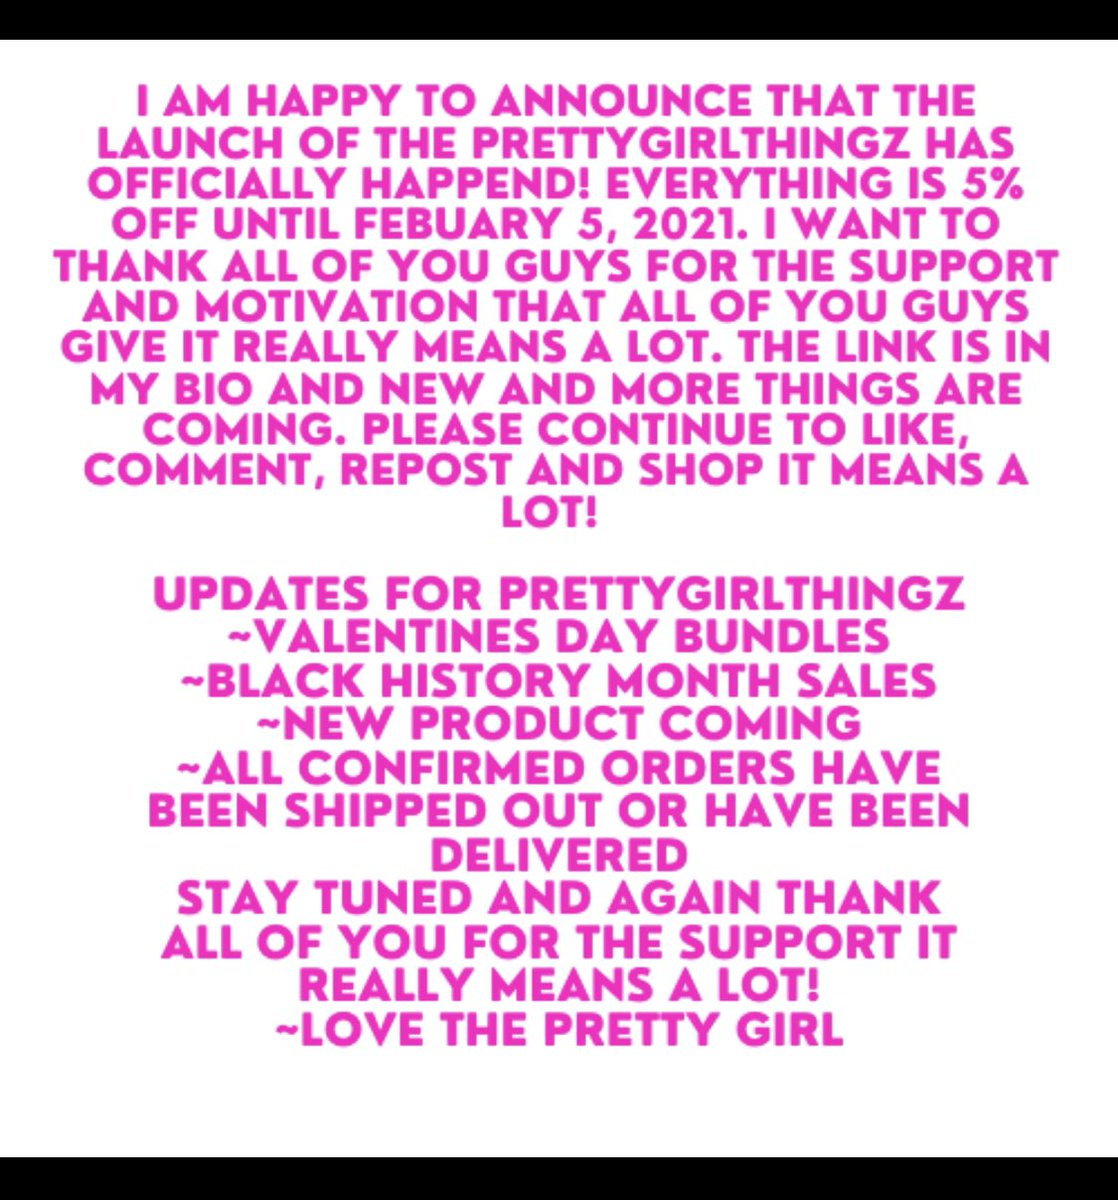 I am so happy to announce that THE PRETTYGIRLTHINGZ WEBSITE! THE LINK IS IN THE BIO✨💕 ~I would like to thank everyone who has made a purchase this far it means a lot ~I ask all of you to keep spreading the word it helps! ~It's only up from here!  #repost #shopsmallbusiness